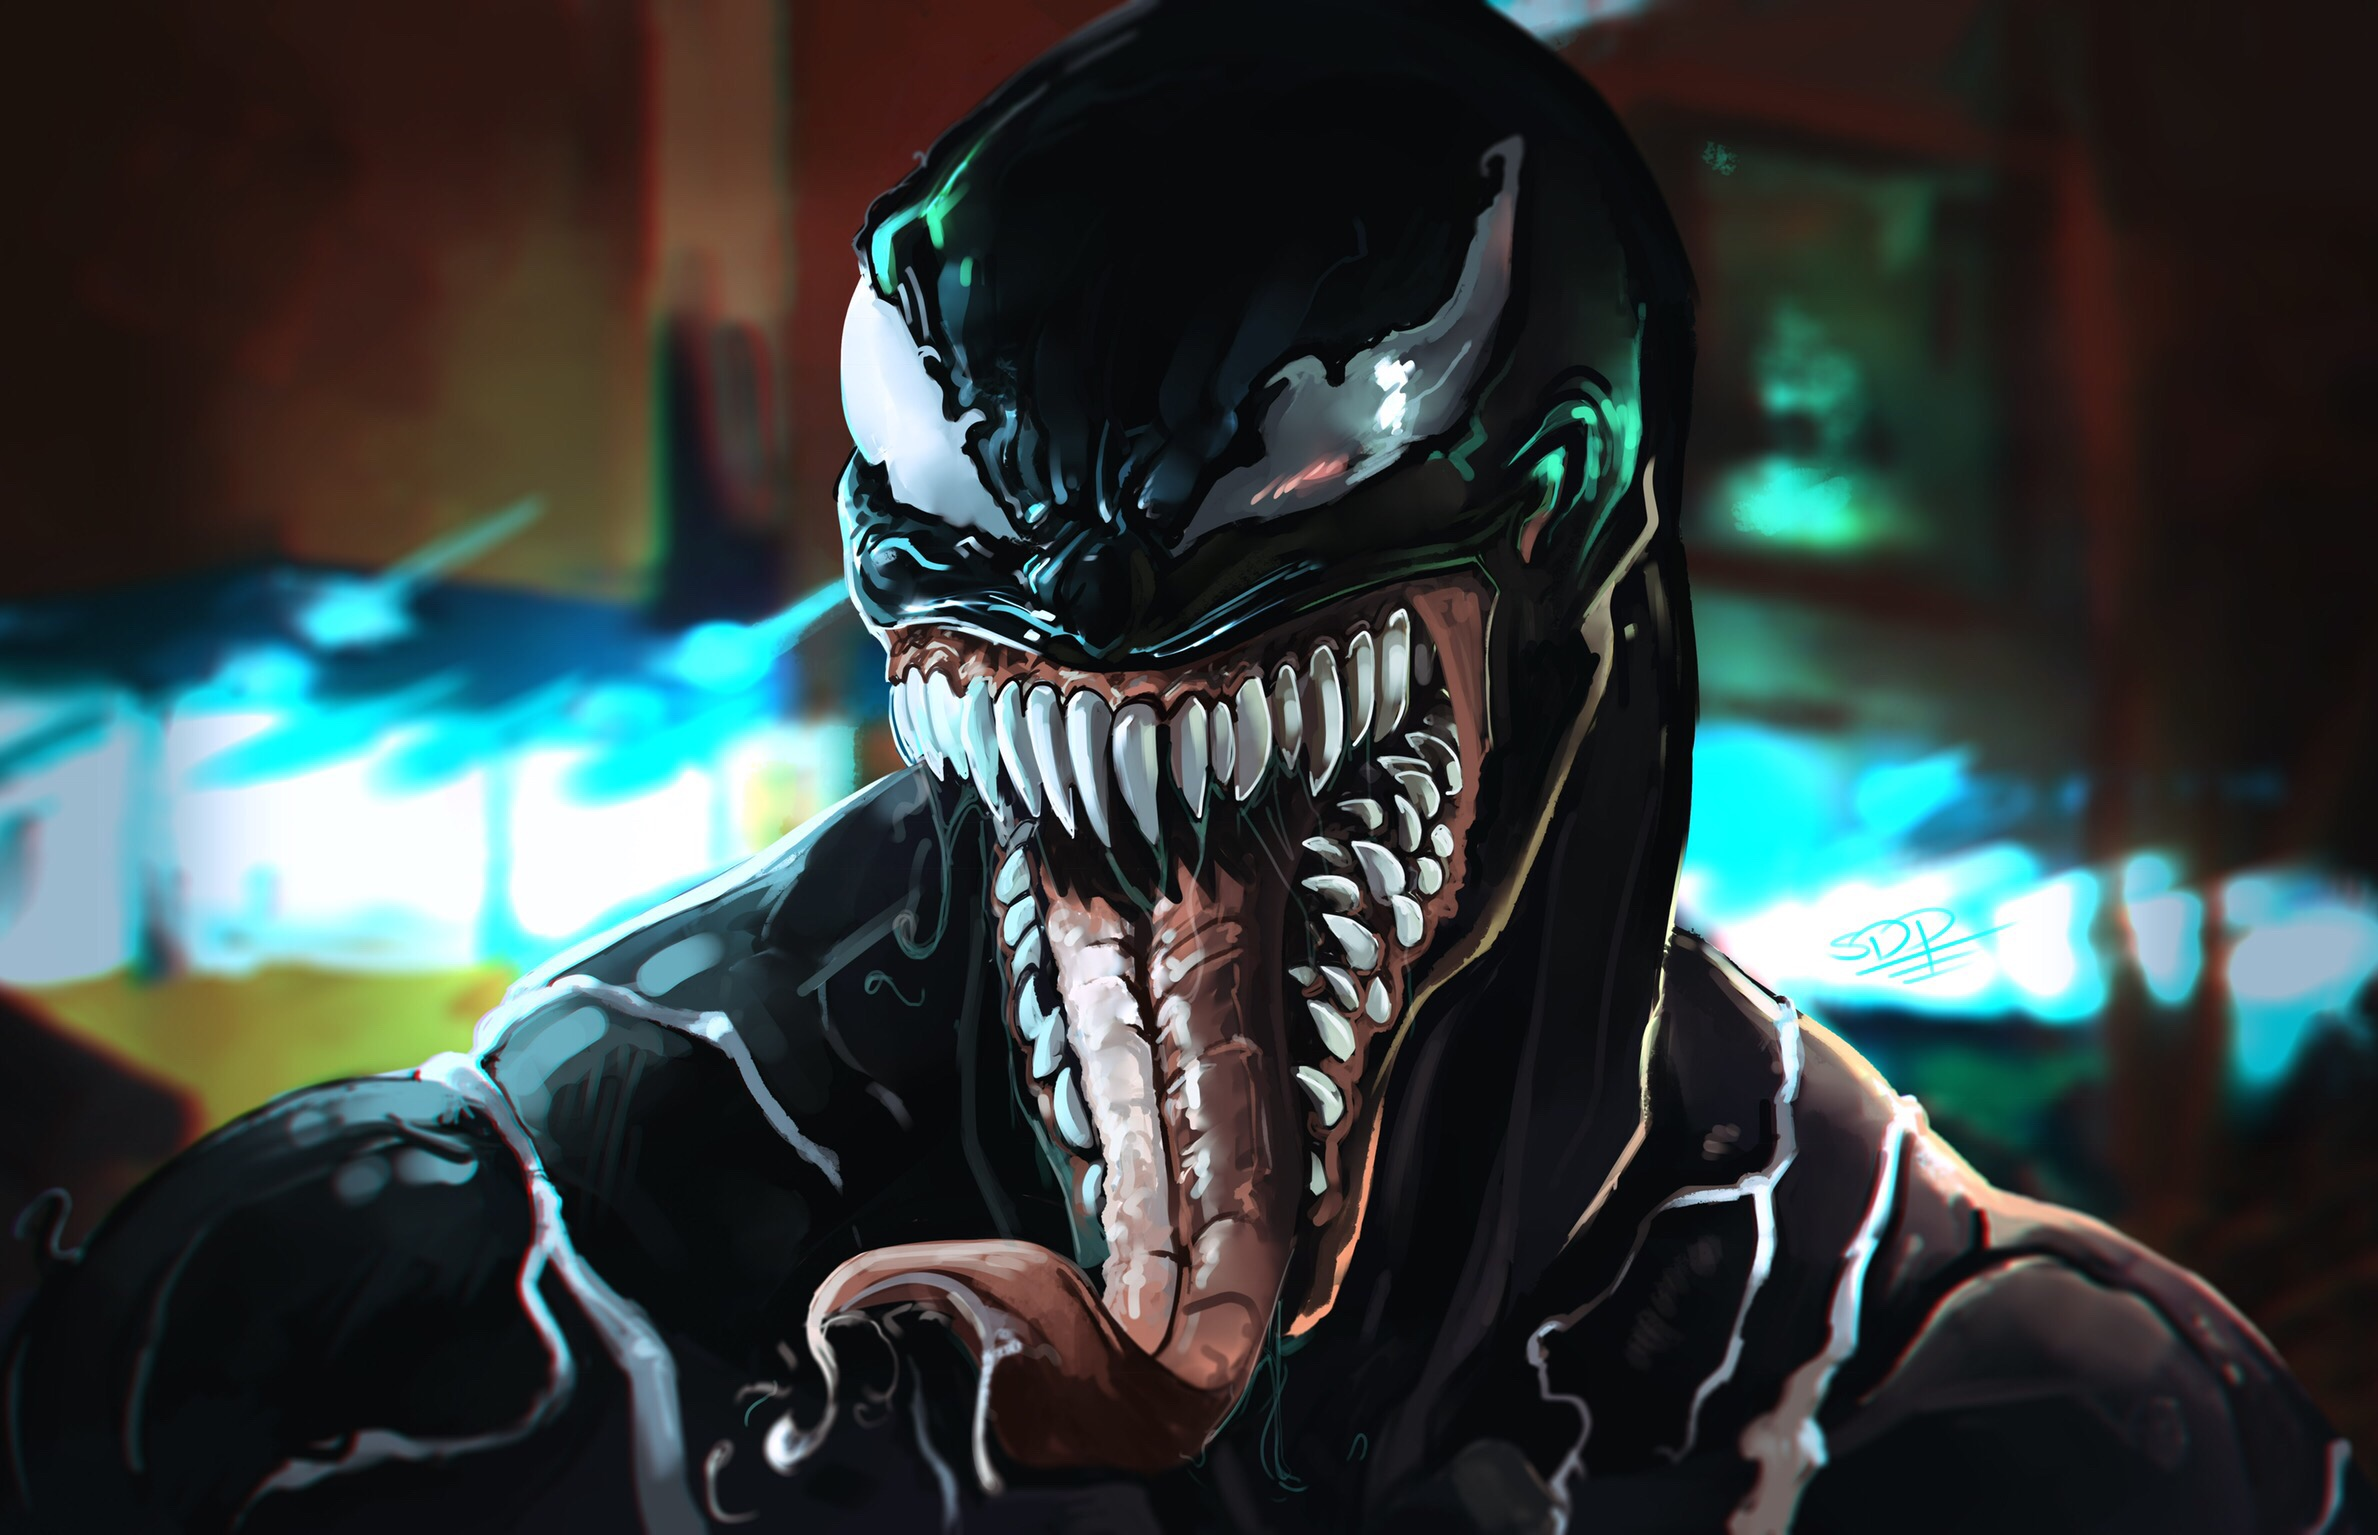 Venom Movie Art - Venom Movie Art - Wallpapers, Venom wallpapers, venom artwork, venom 2018 wallpaper, venom, tomy hardy, spiderman infinity war wallpapers, 4k